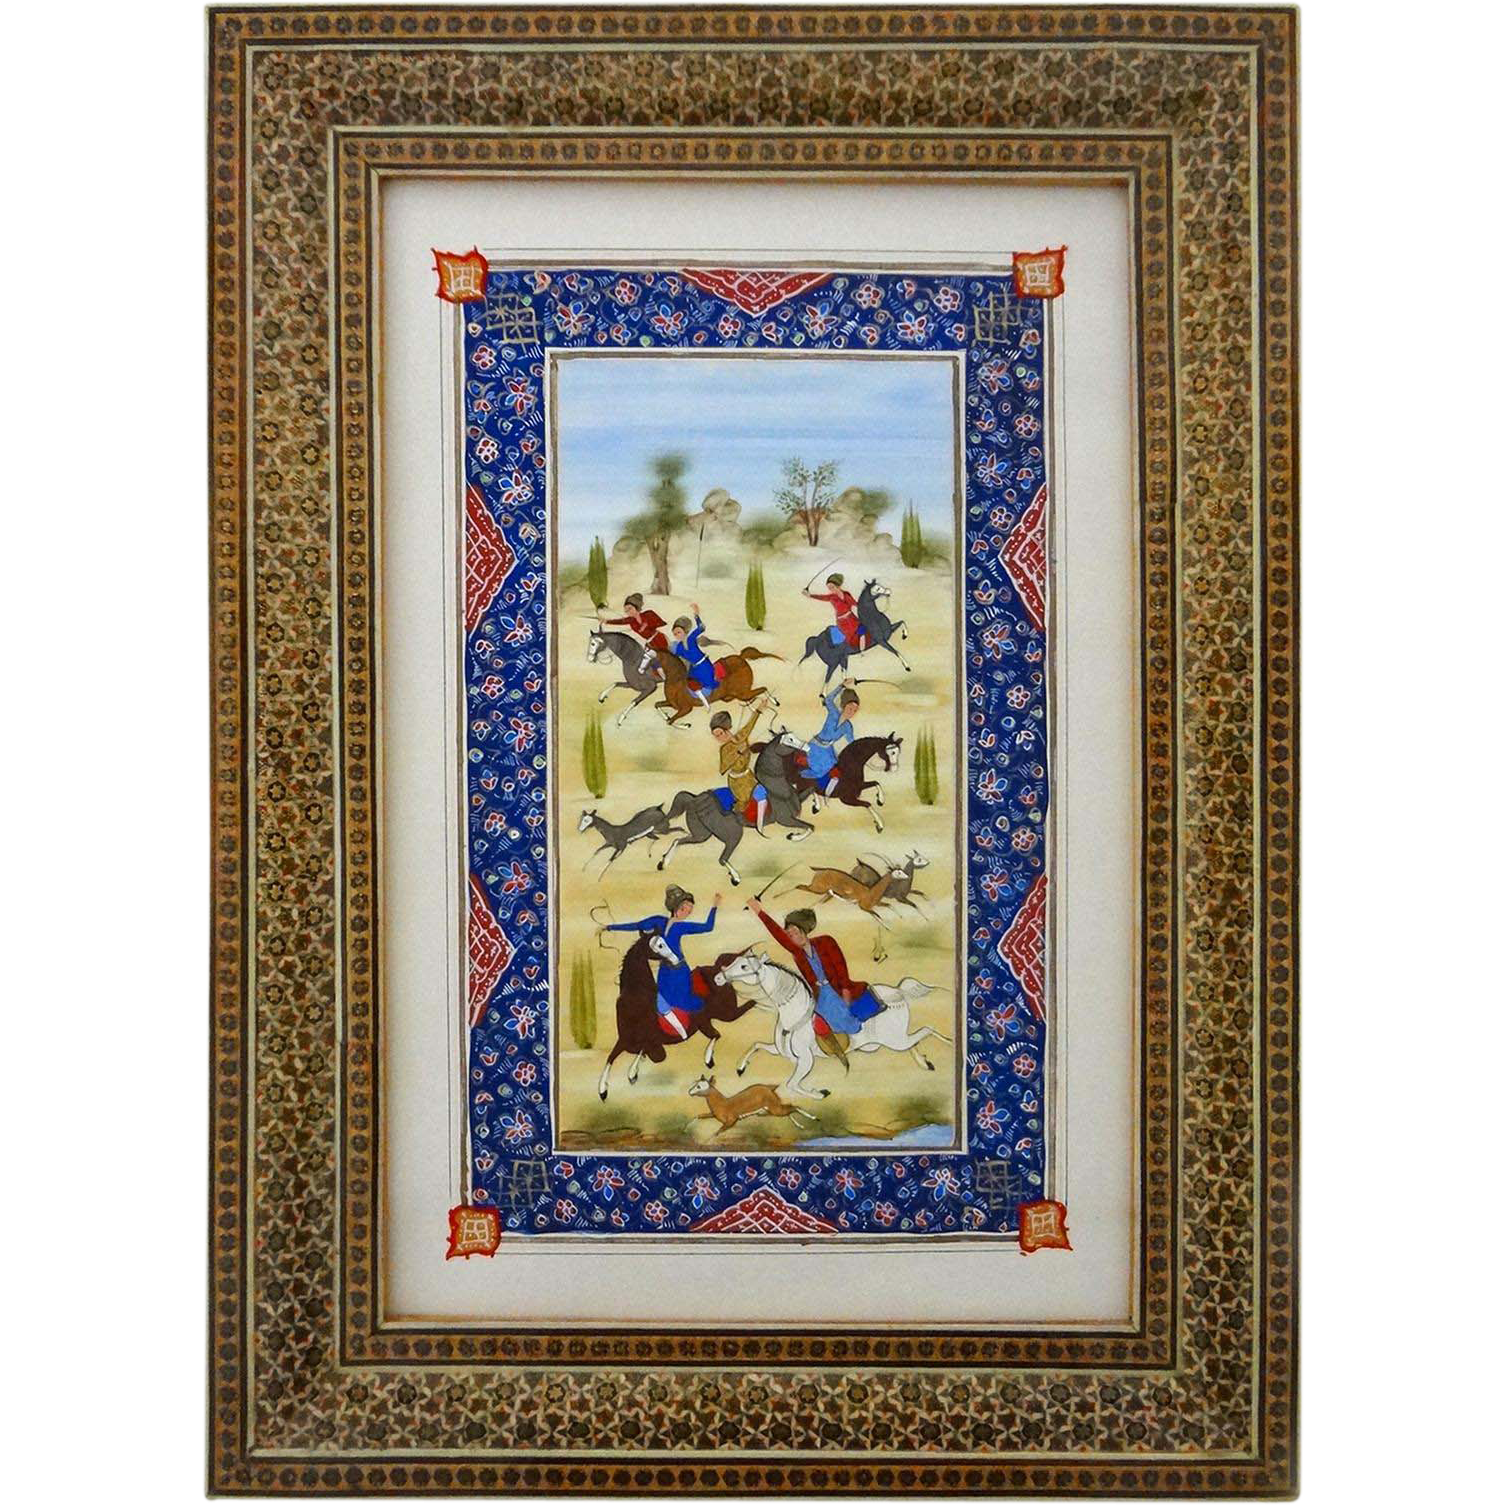 Traditional Persian Style Painting Hunters Horses Deer in Decorative Frame - 20th Century